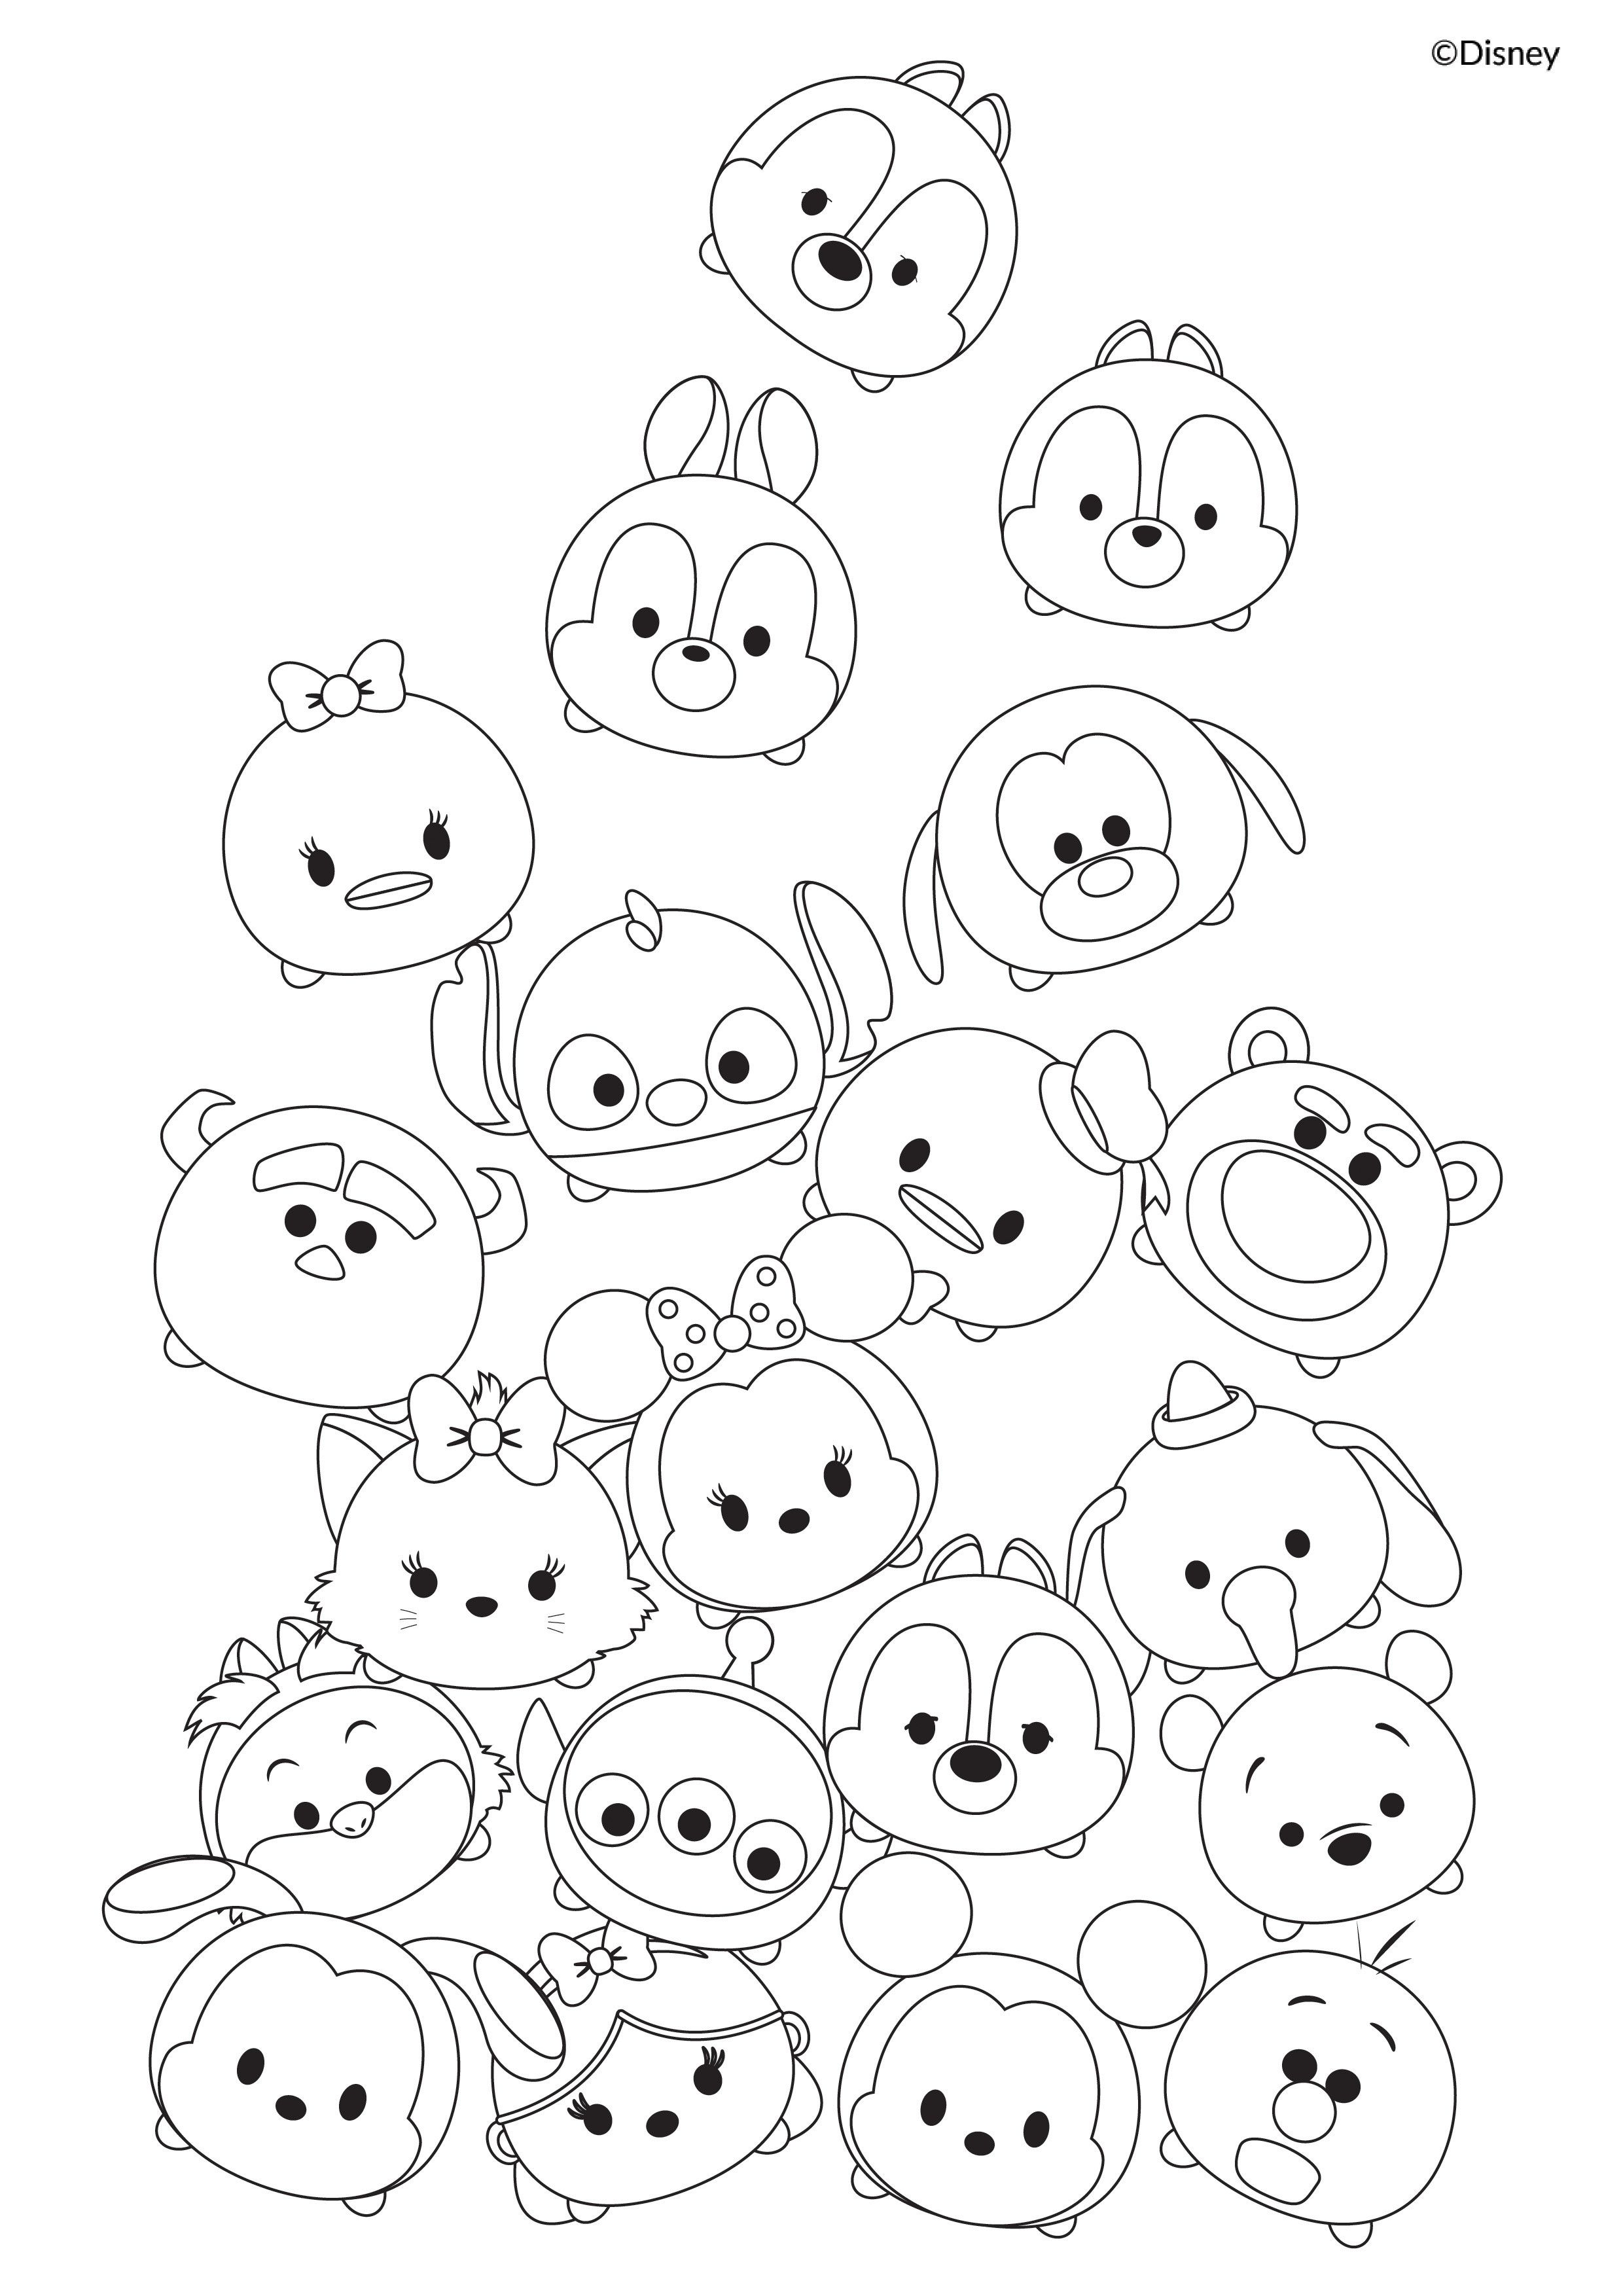 Disney Tsum Tsum Coloring Pages Black And White Tsum Tsum Coloring Pages Disney Coloring Pages Cute Coloring Pages